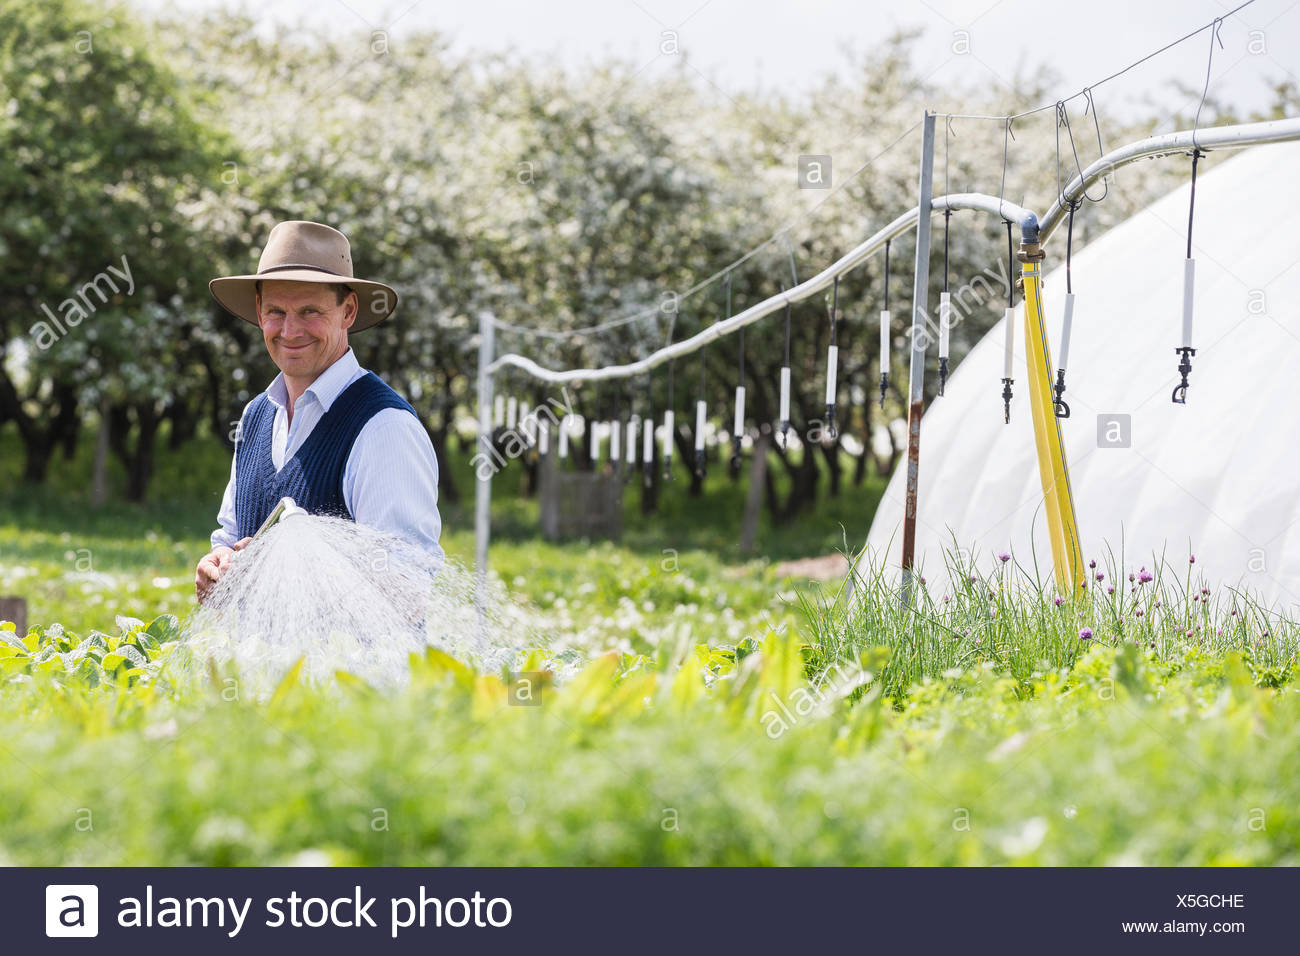 Farmer watering plants with hosepipe - Stock Image